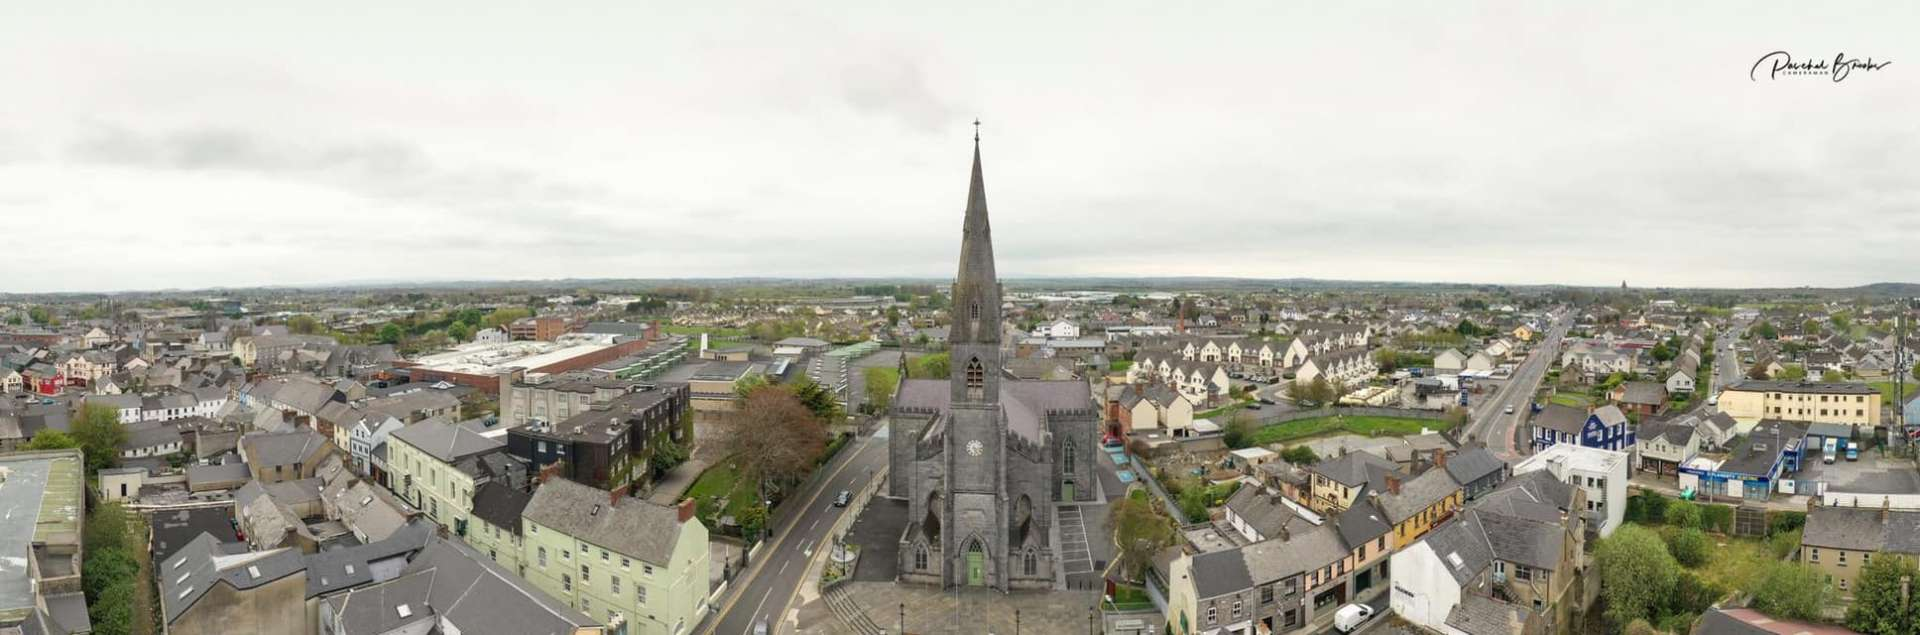 A View of Ennis - Paschal Brooks Cameraman 086 2588565